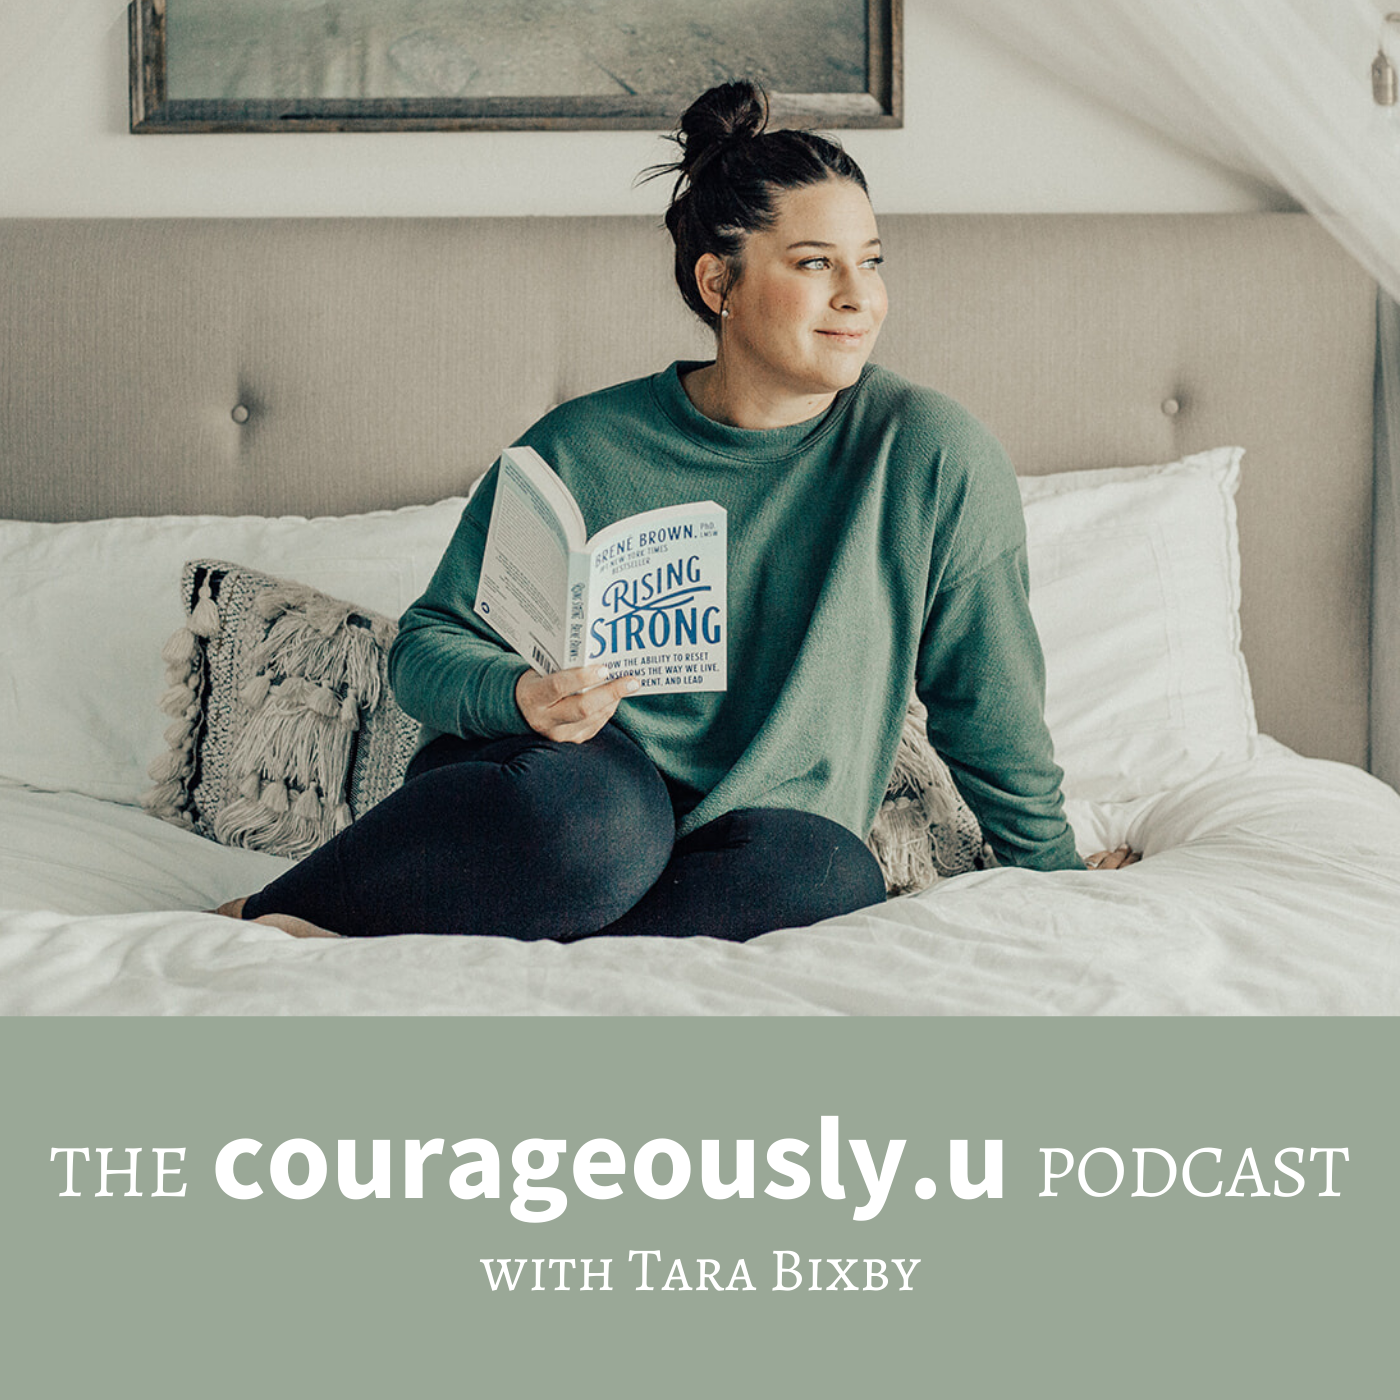 The Courageously.u Podcast show art